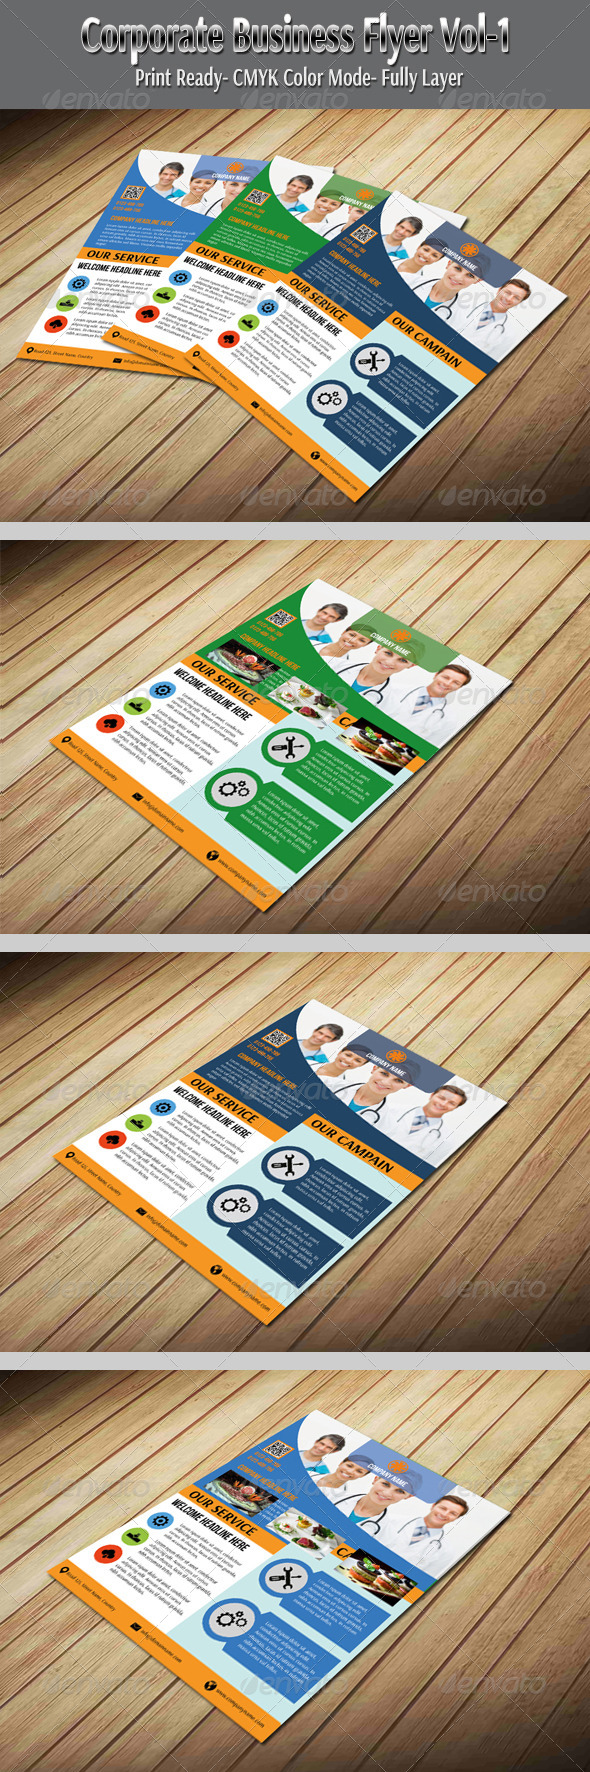 Corporate Business Flyer Vol-1